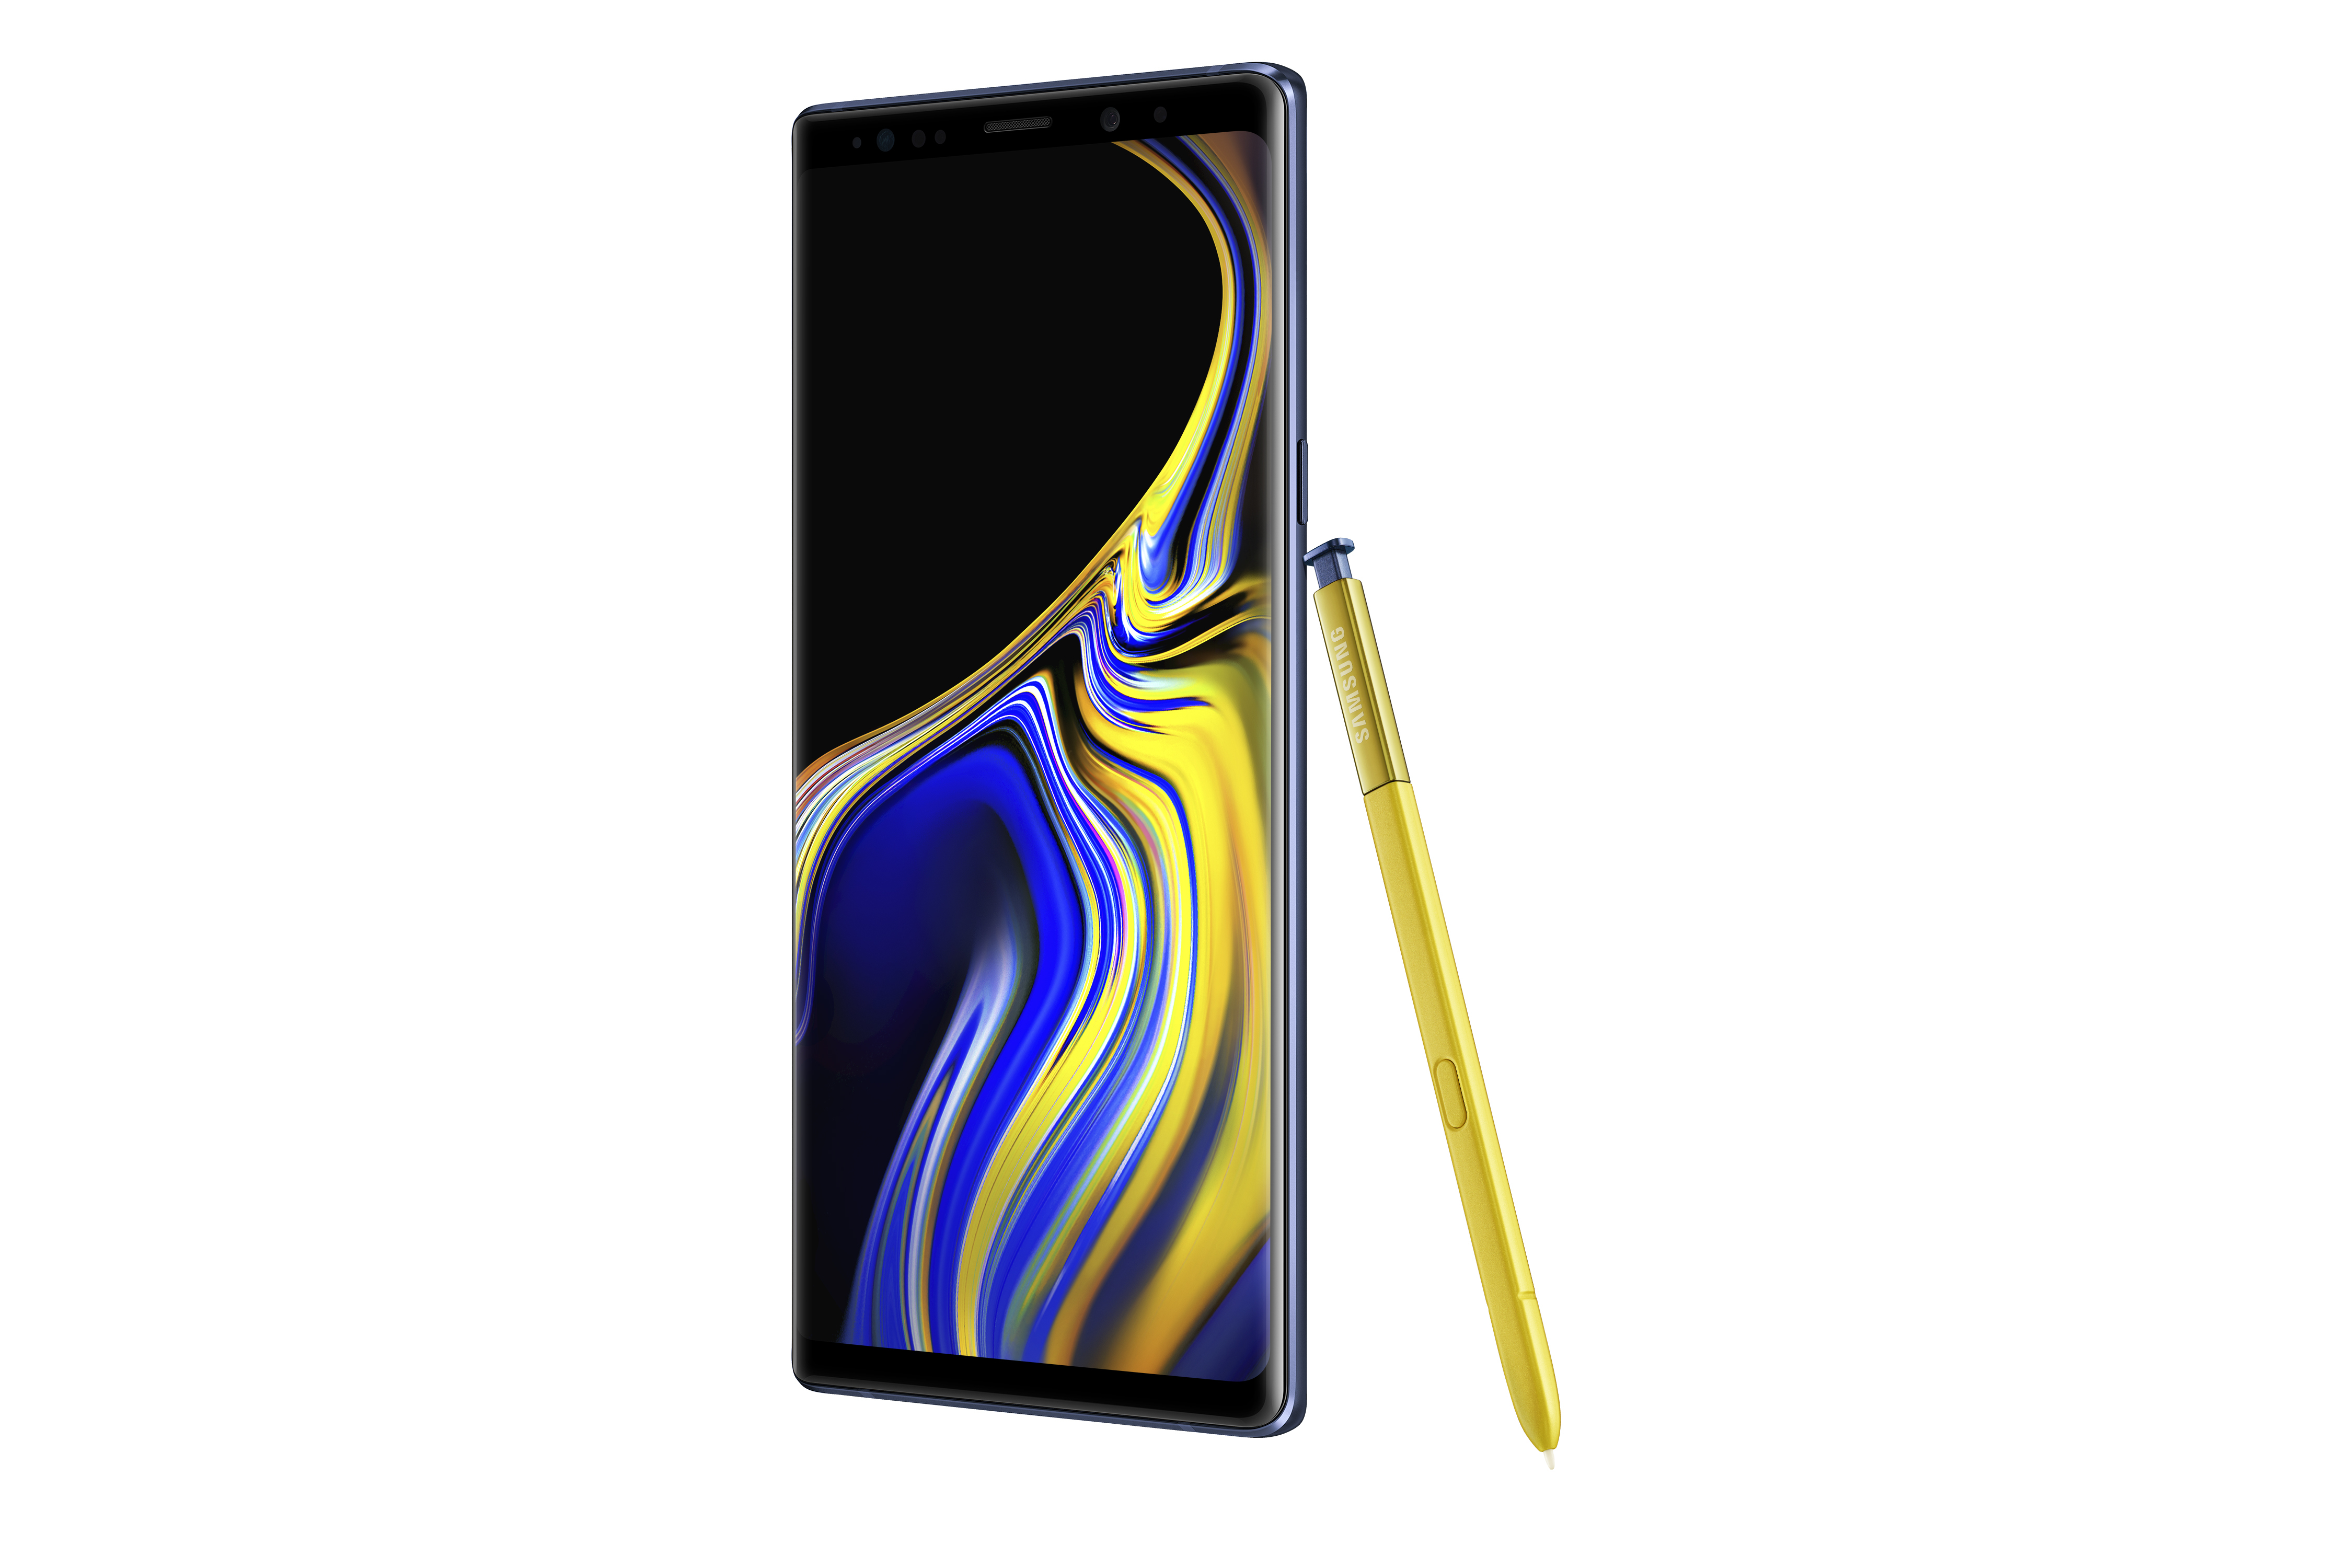 The New, Super Powerful Samsung Galaxy Note9: For Those Who Want It ...